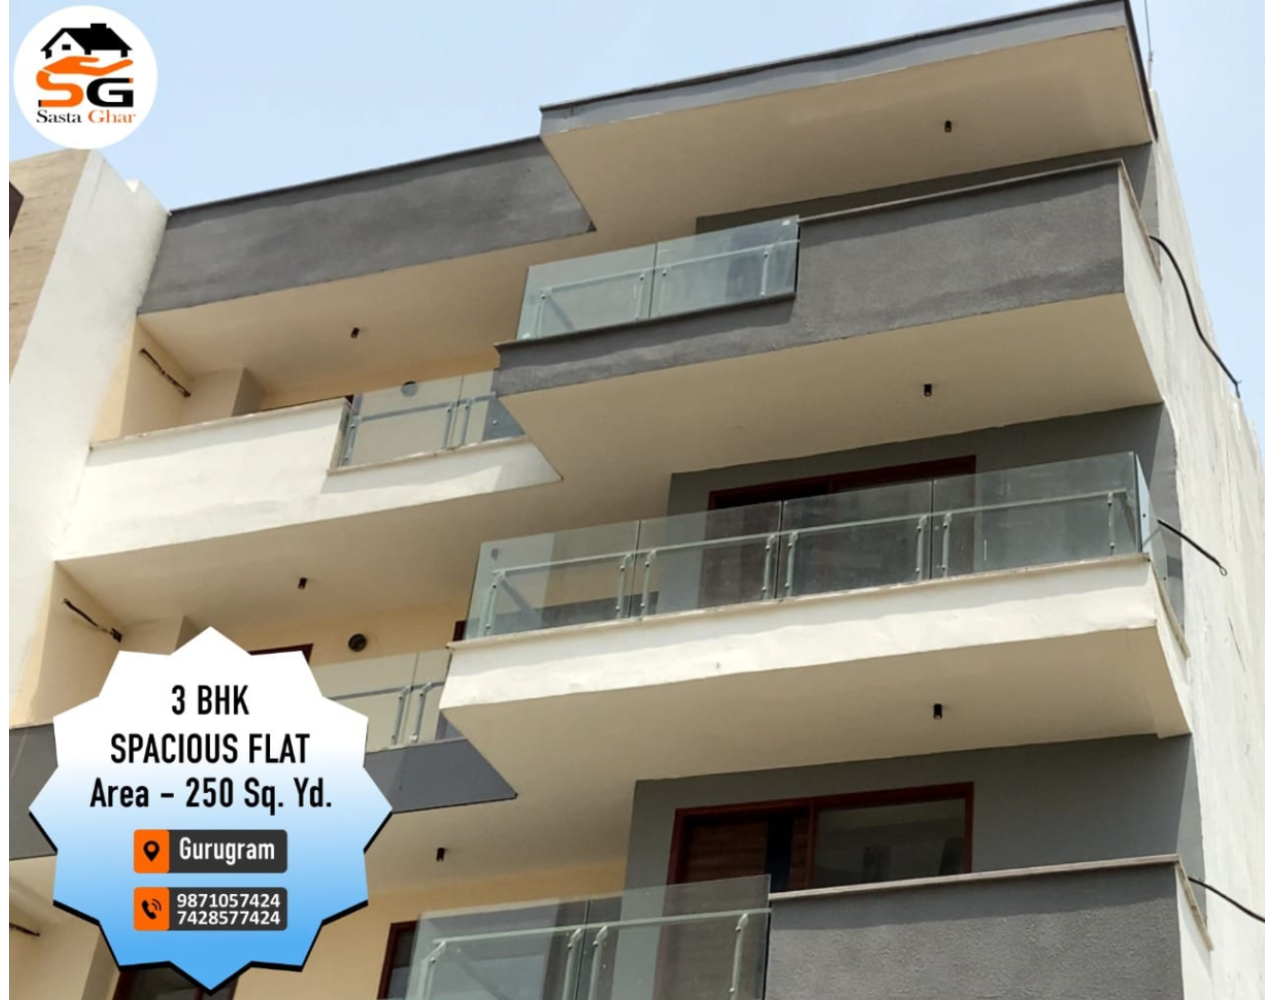 3 BHK flat in Sector 57 Gurgaon Image